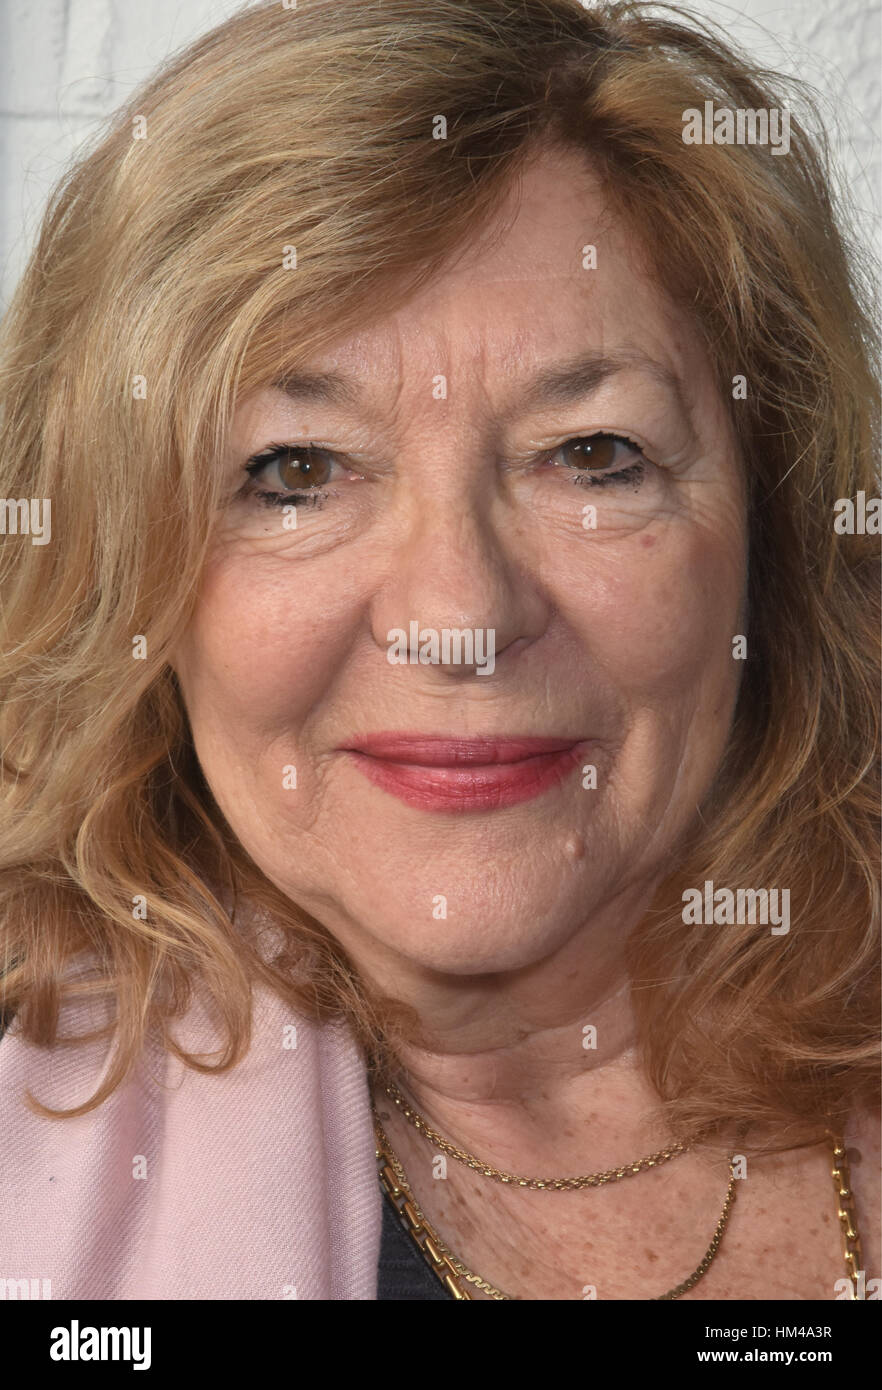 Pussy Carol Drinkwater naked photo 2017